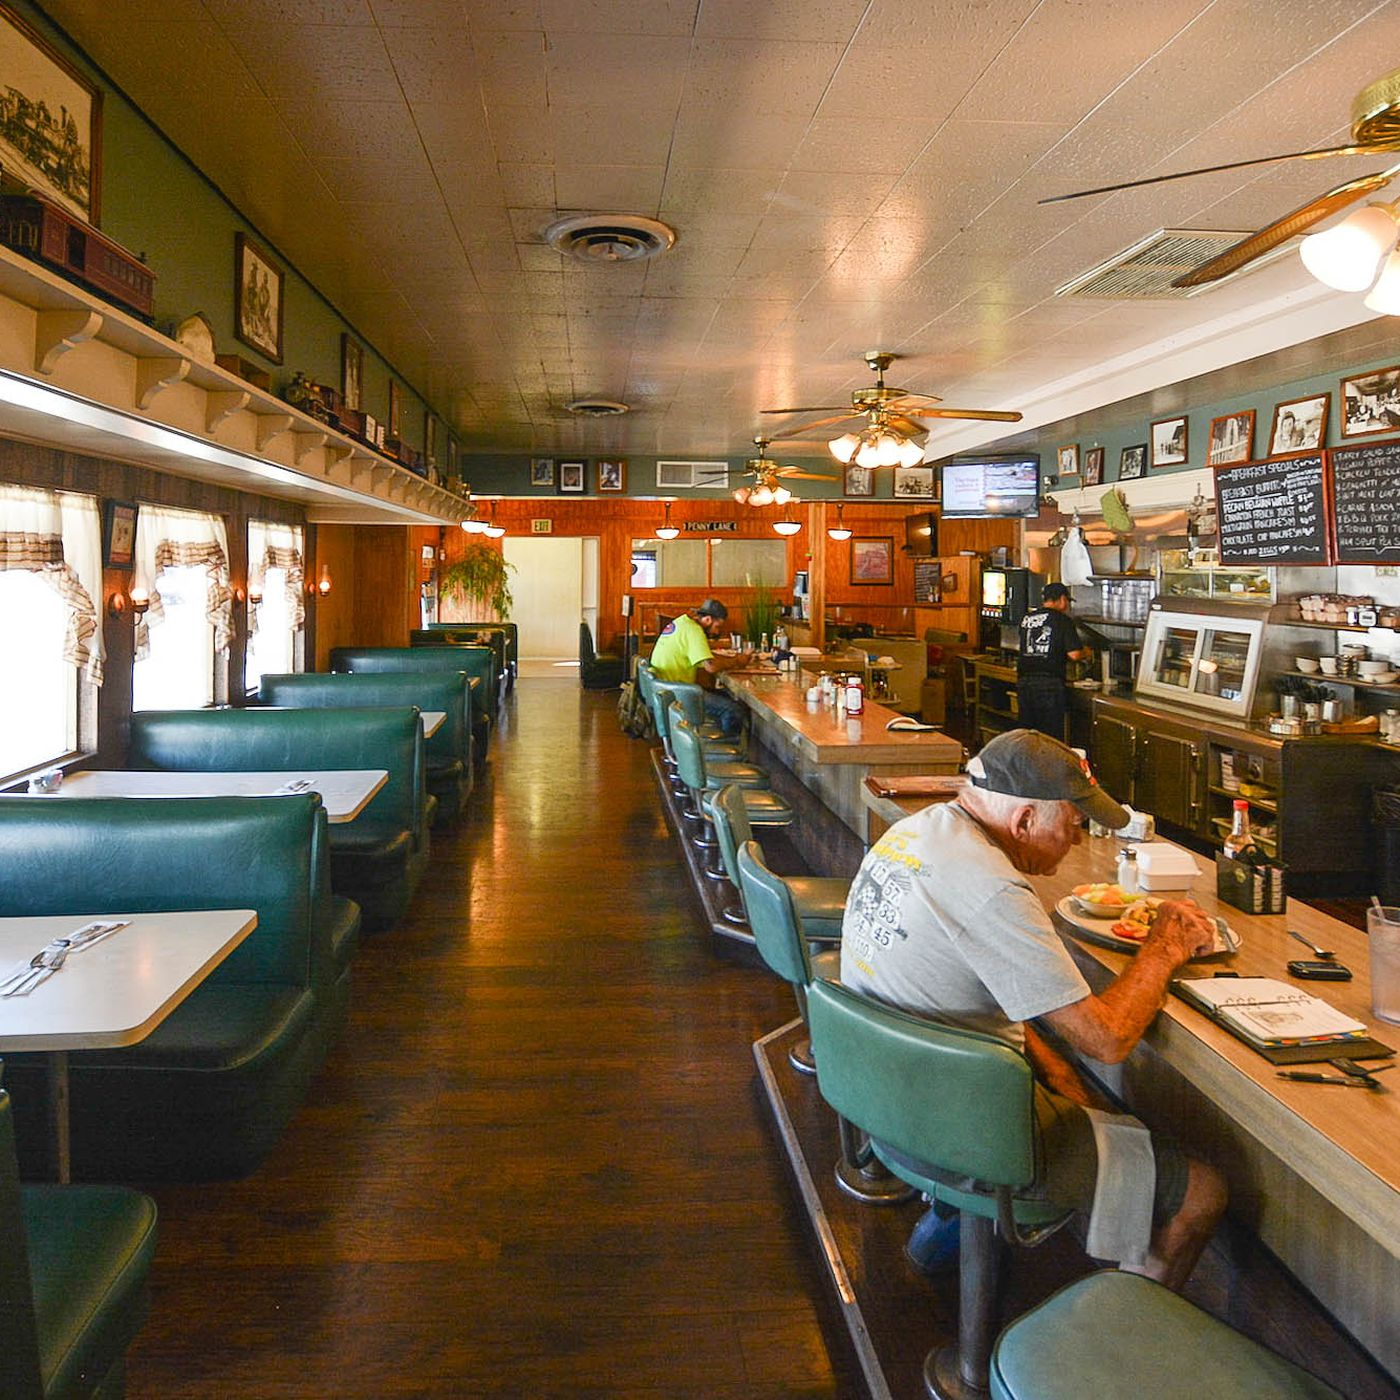 La S Oldest Restaurant Keeps A 130 Year Diner Tradition Alive Eater La